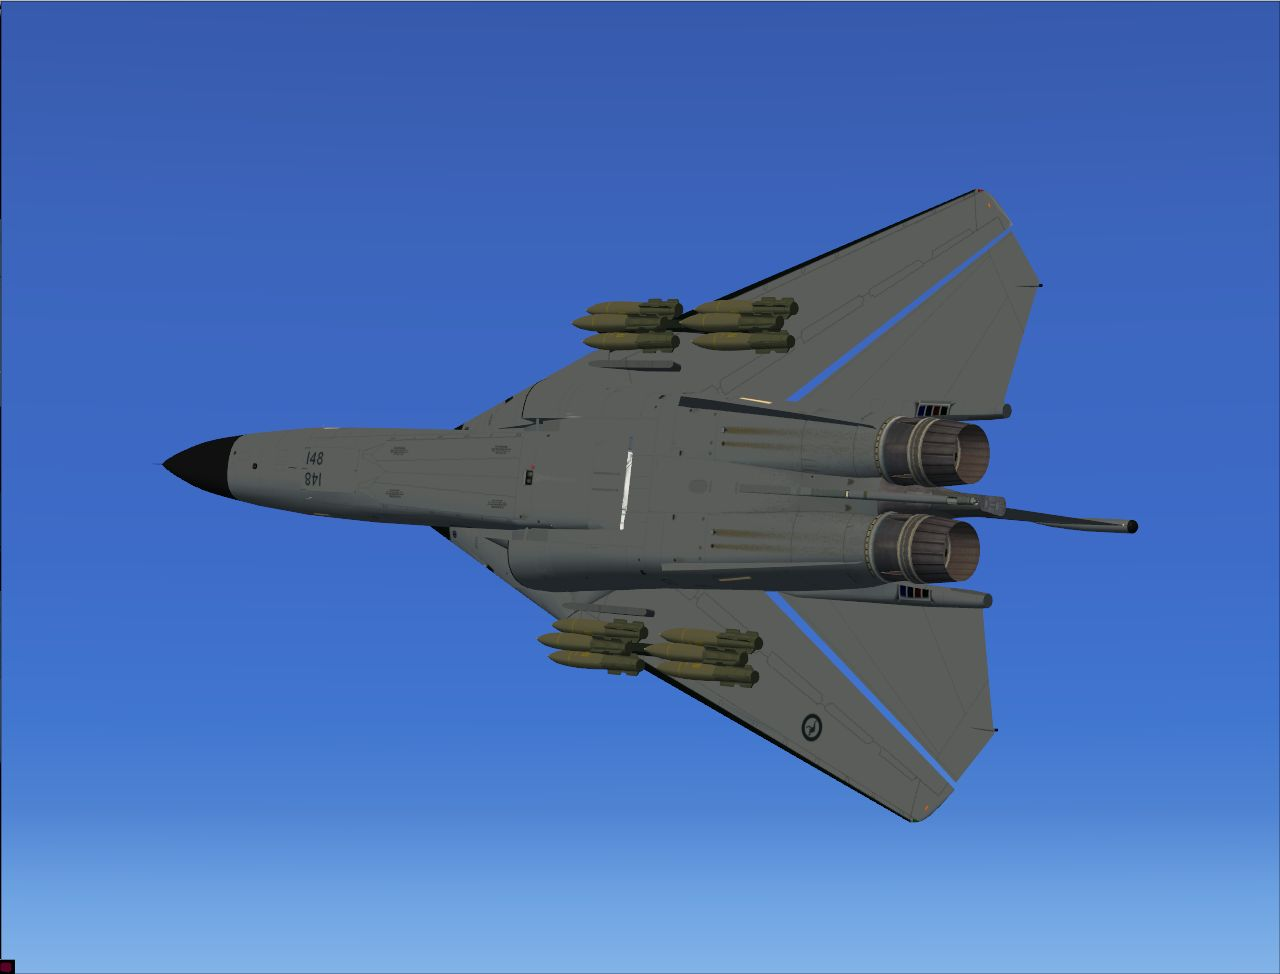 Alphasim F 111 Aardvark Fsx Descargas | caduforqui ml